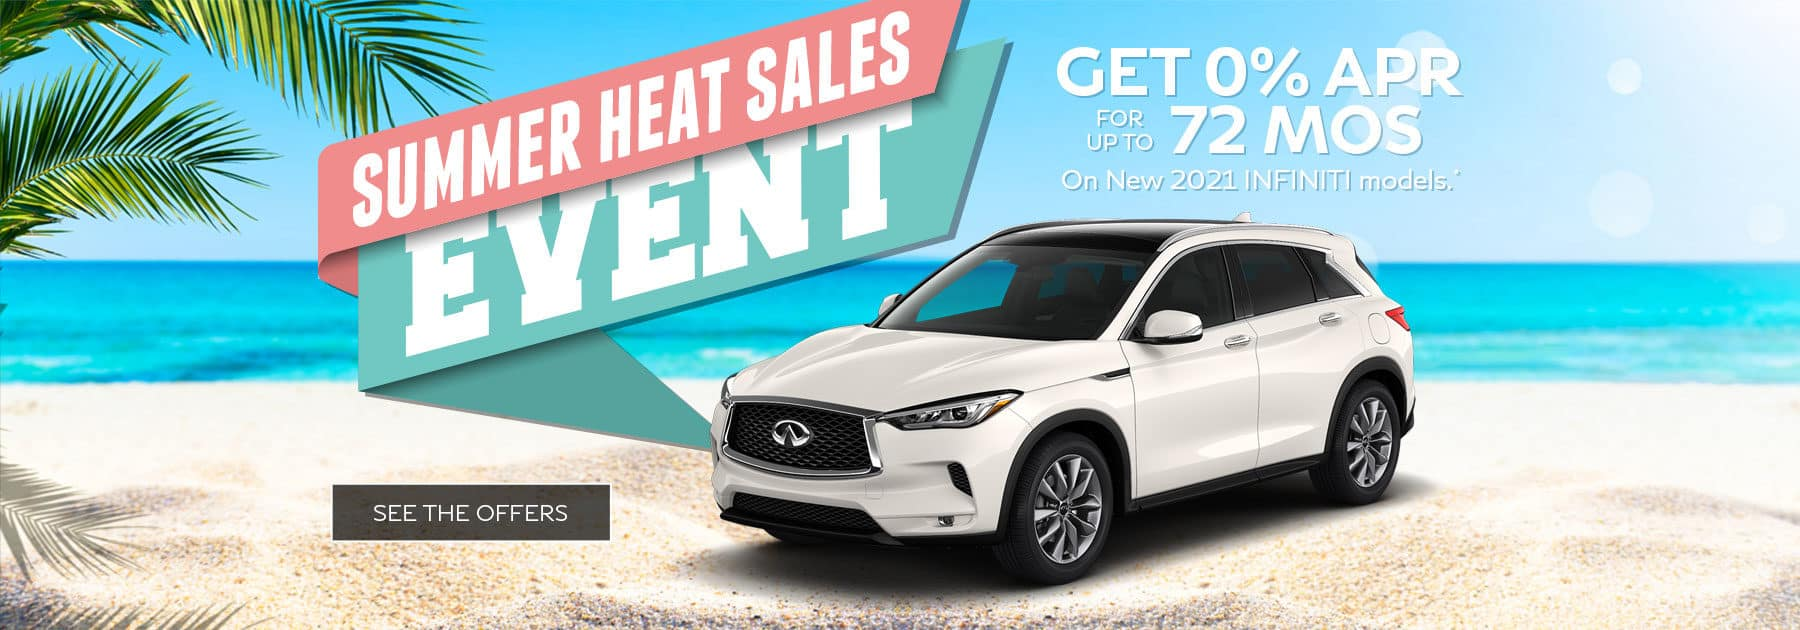 SDInf-hl-DI-summer-sales-event-6-21